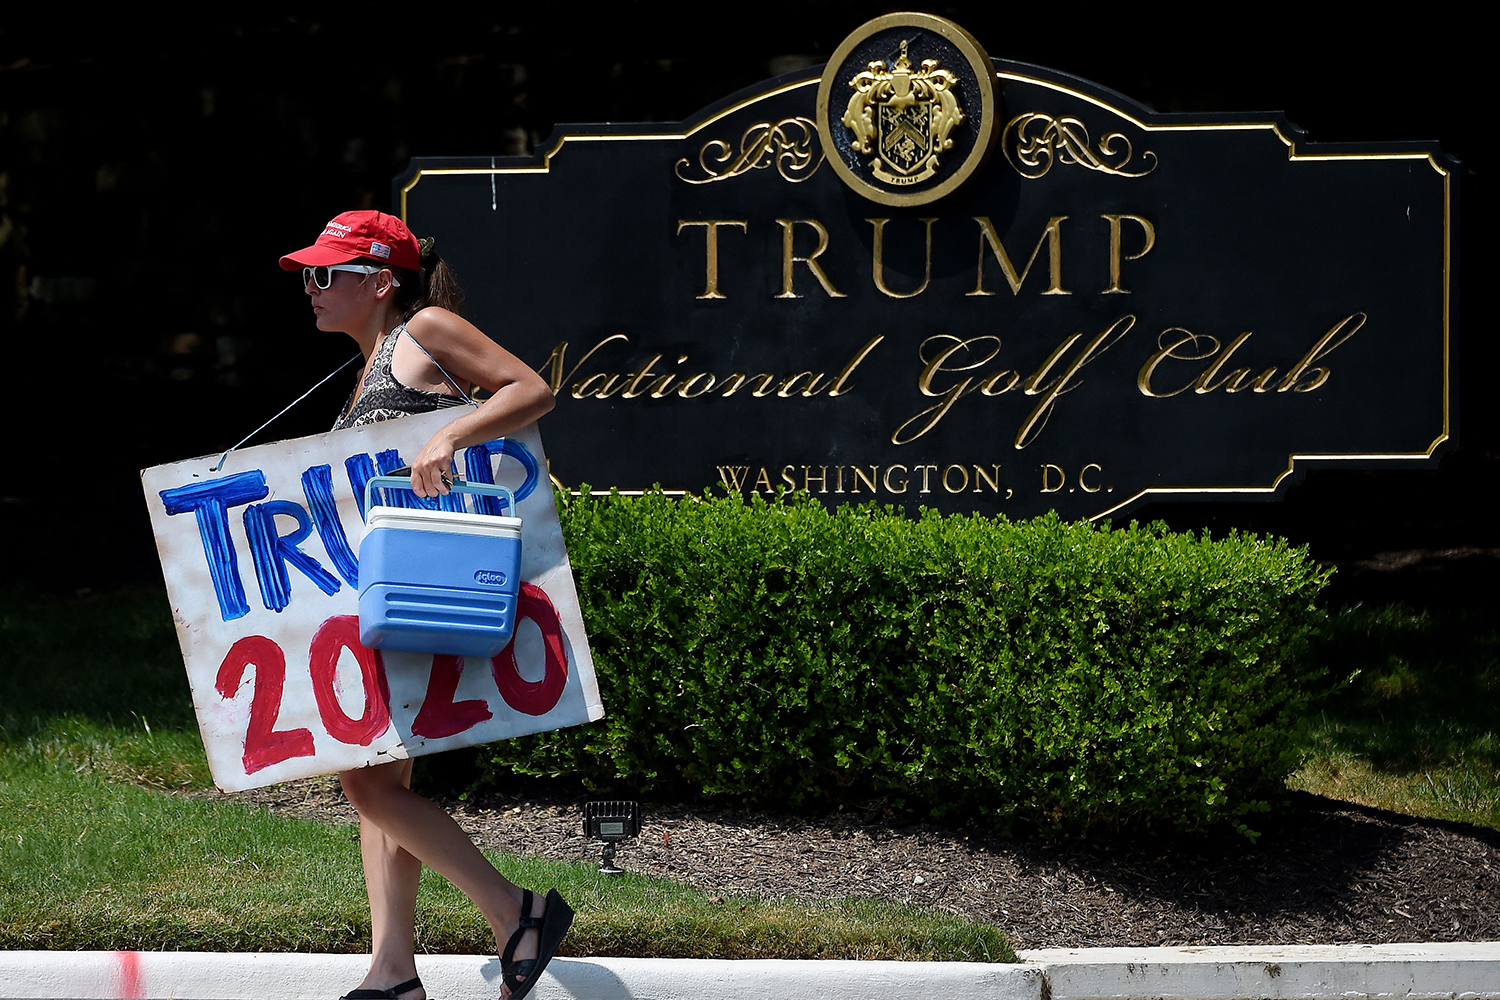 A supporter of President Donald Trump prepares to wait outside Trump National Golf Club in Sterling, Virginia, on July 19. OLIVIER DOULIERY/AFP via Getty Images